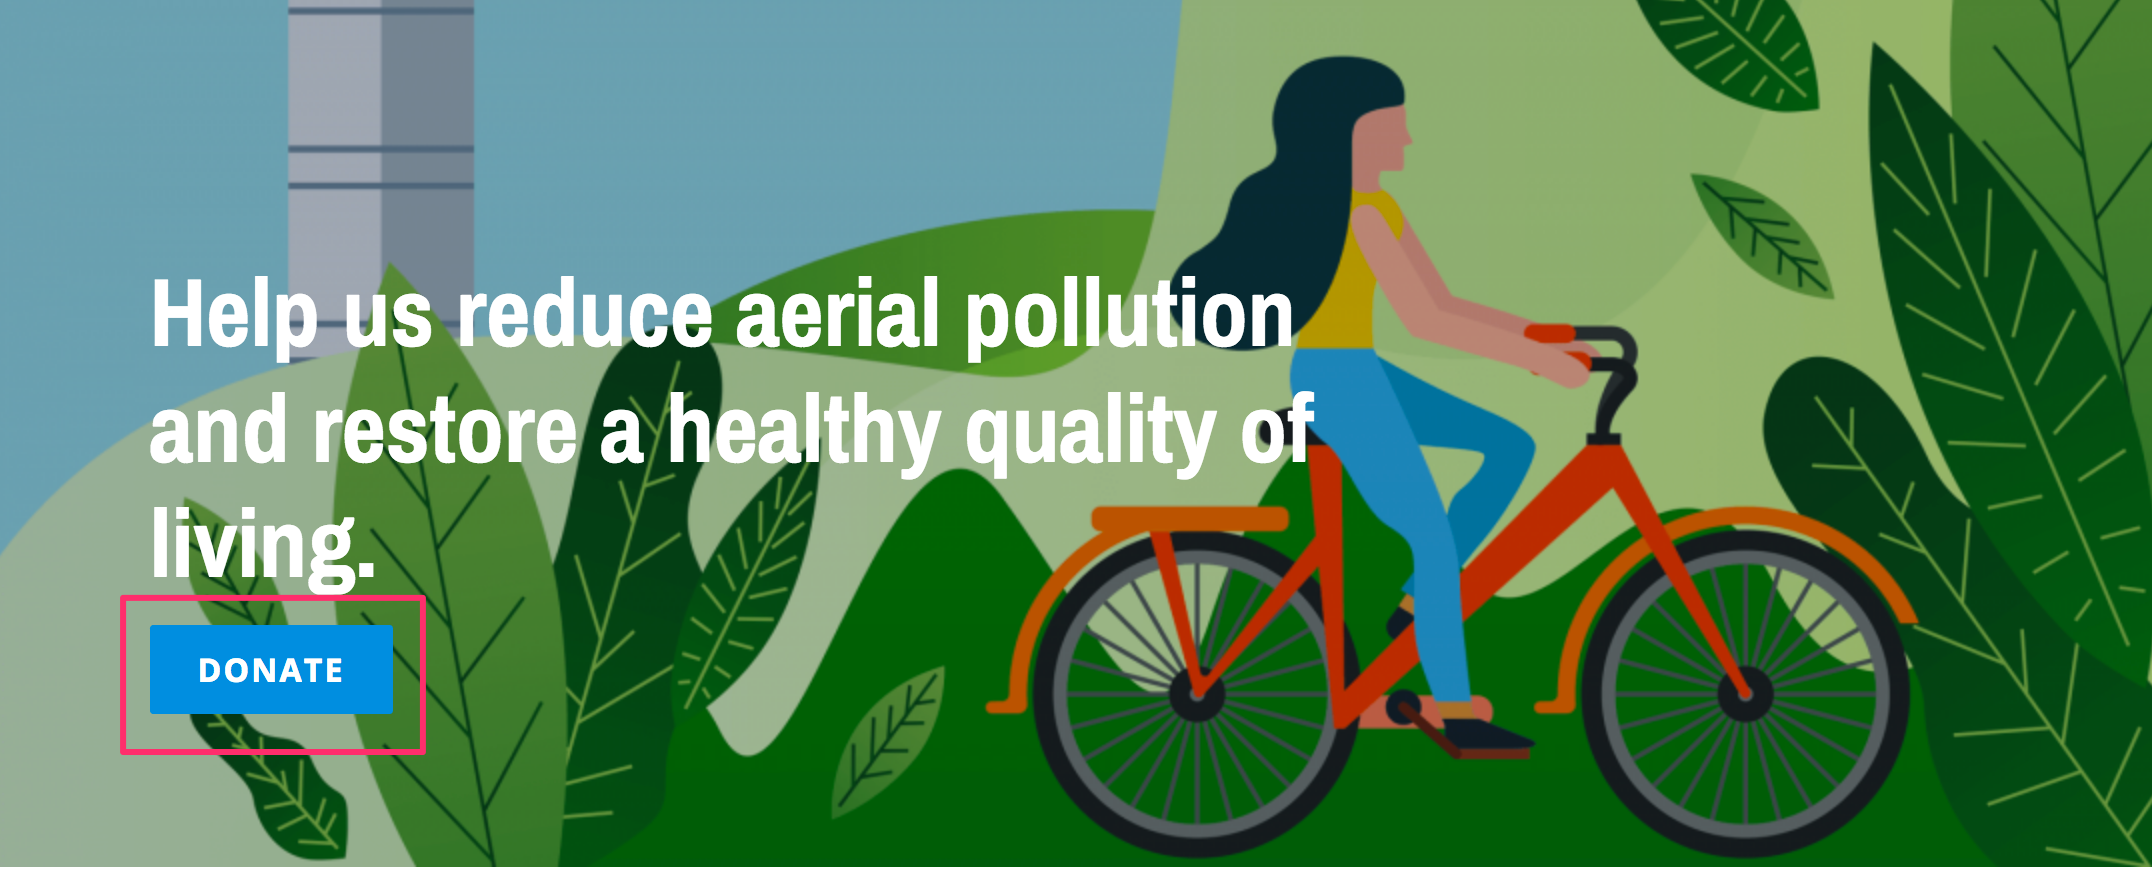 Les_Pollués_de_Montréal-Trudeau_–_Help_us_reduce_aerial_pollution_and_restore_a_healthy_quality_of_living_.png